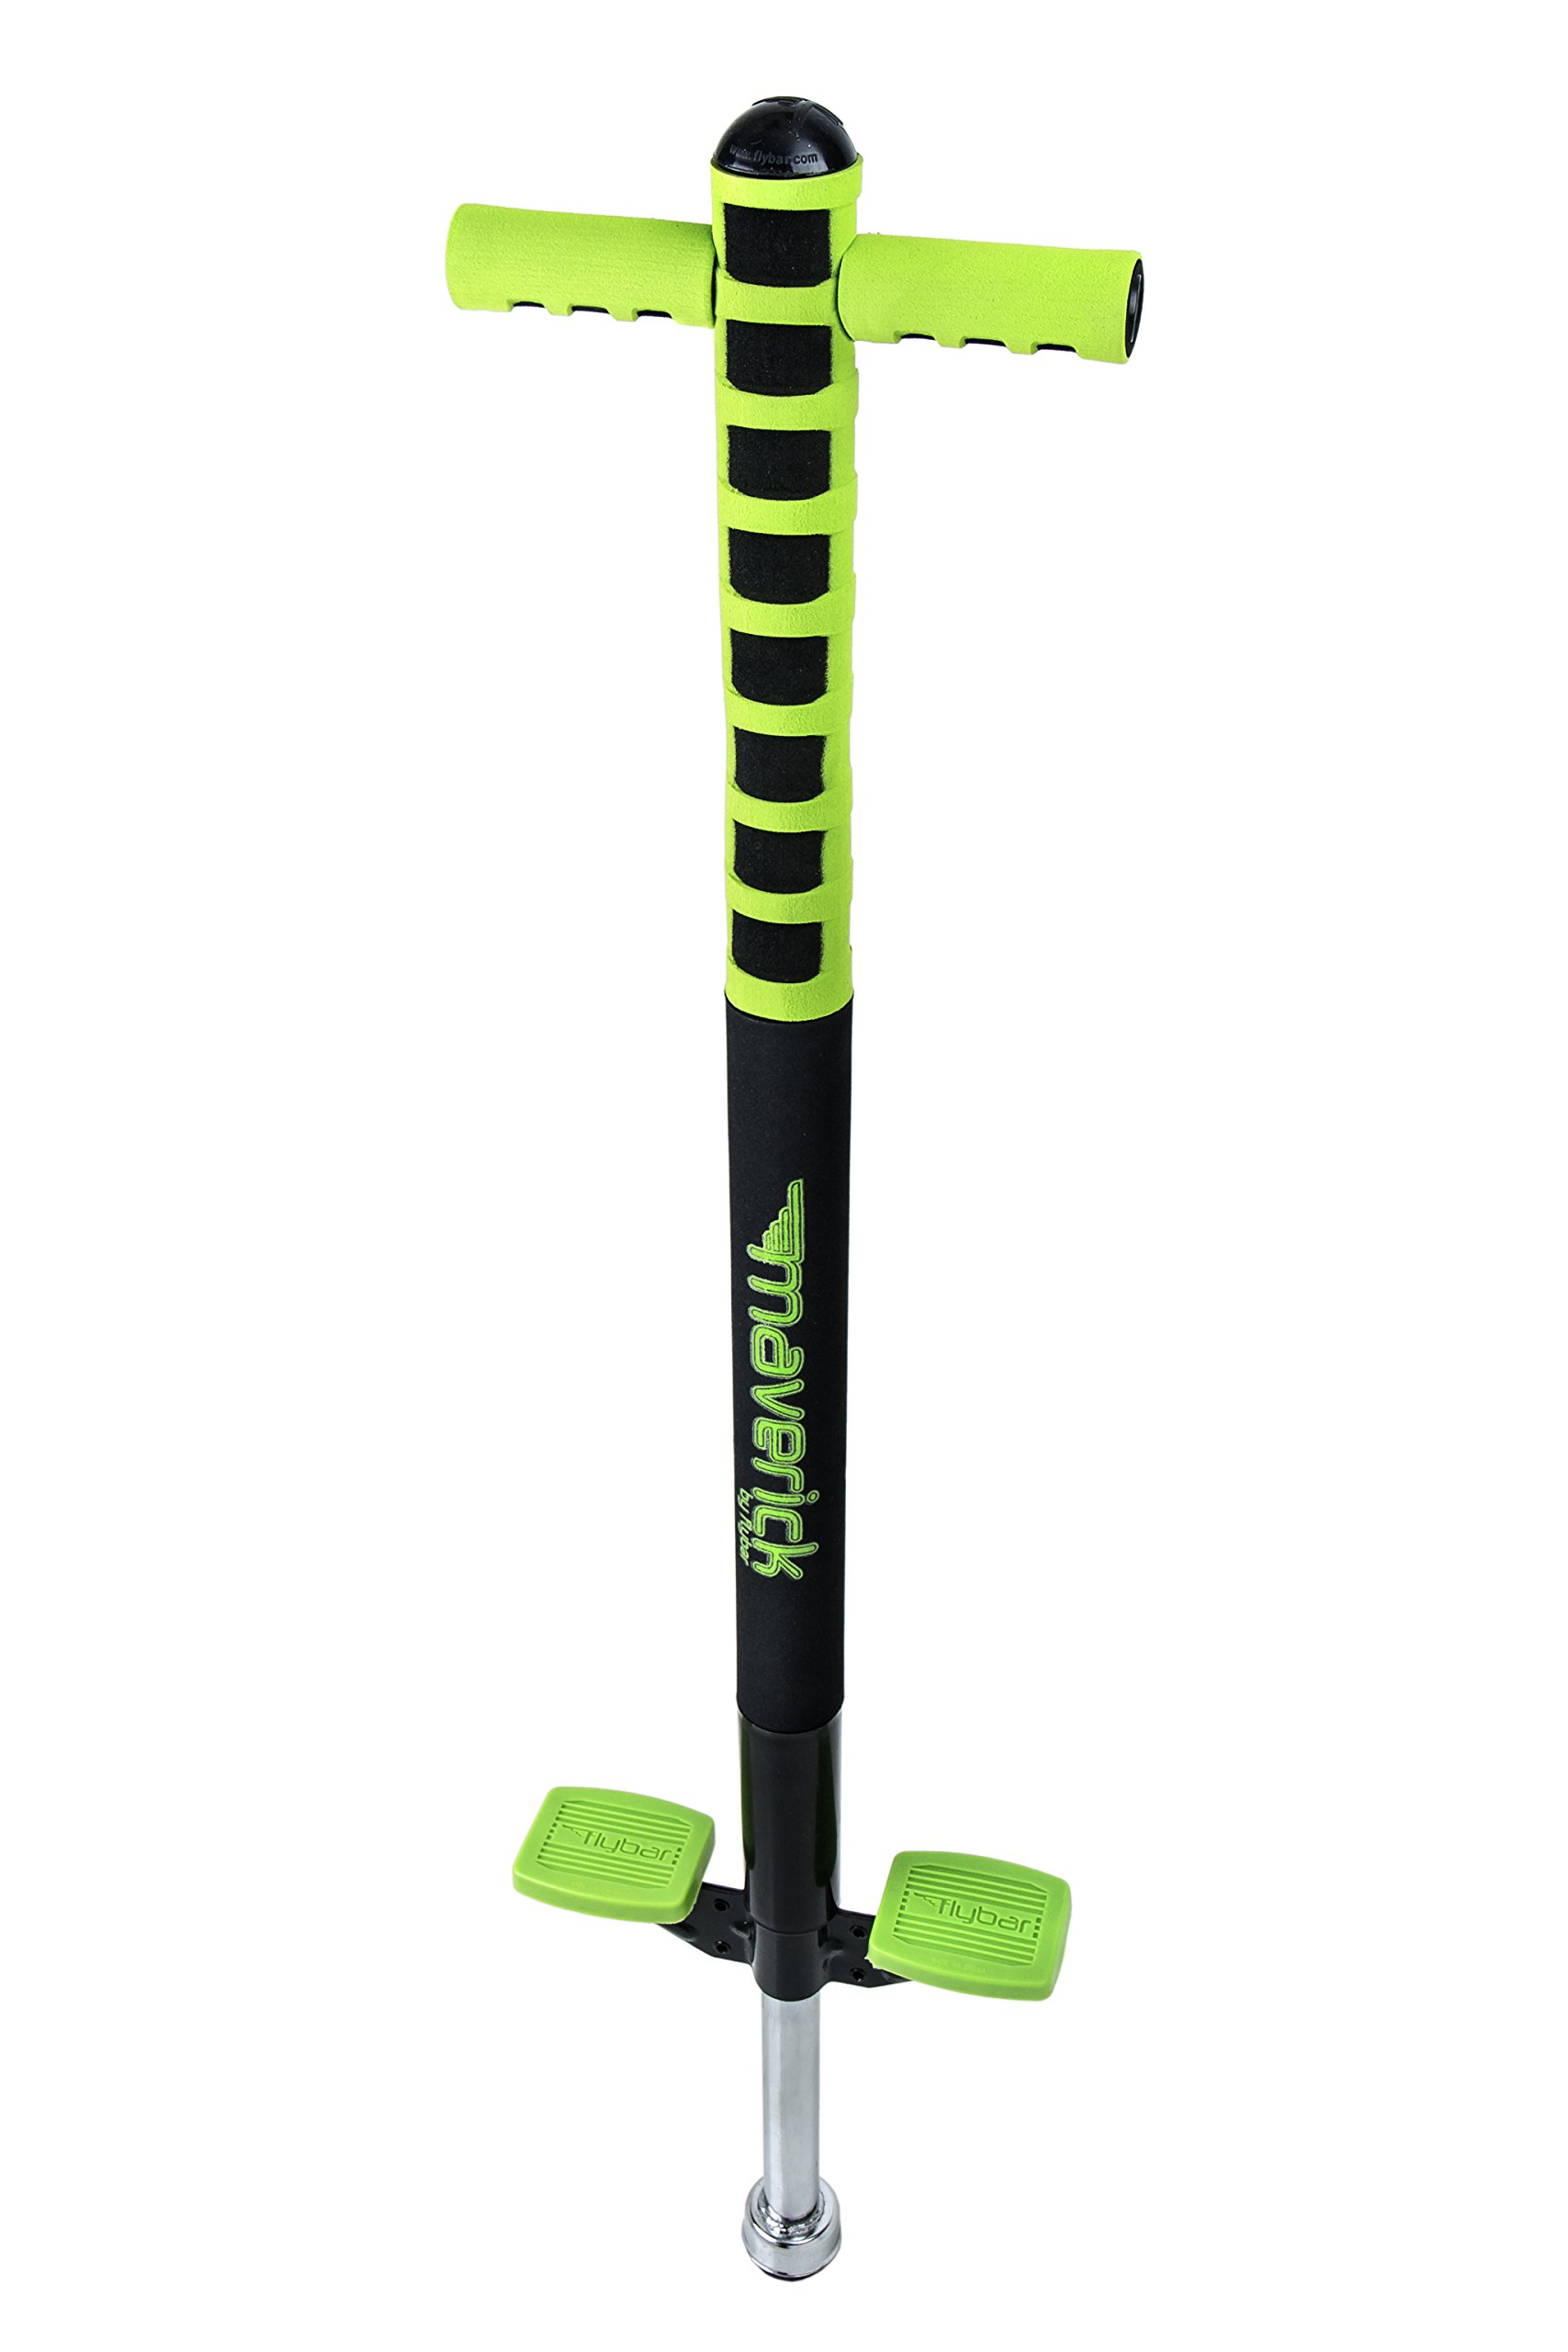 Flybar Foam Maverick Pogo Stick with Quick Clip Pogo Carry Strap (Green/Black - Green Strap) by Flybar (Image #4)